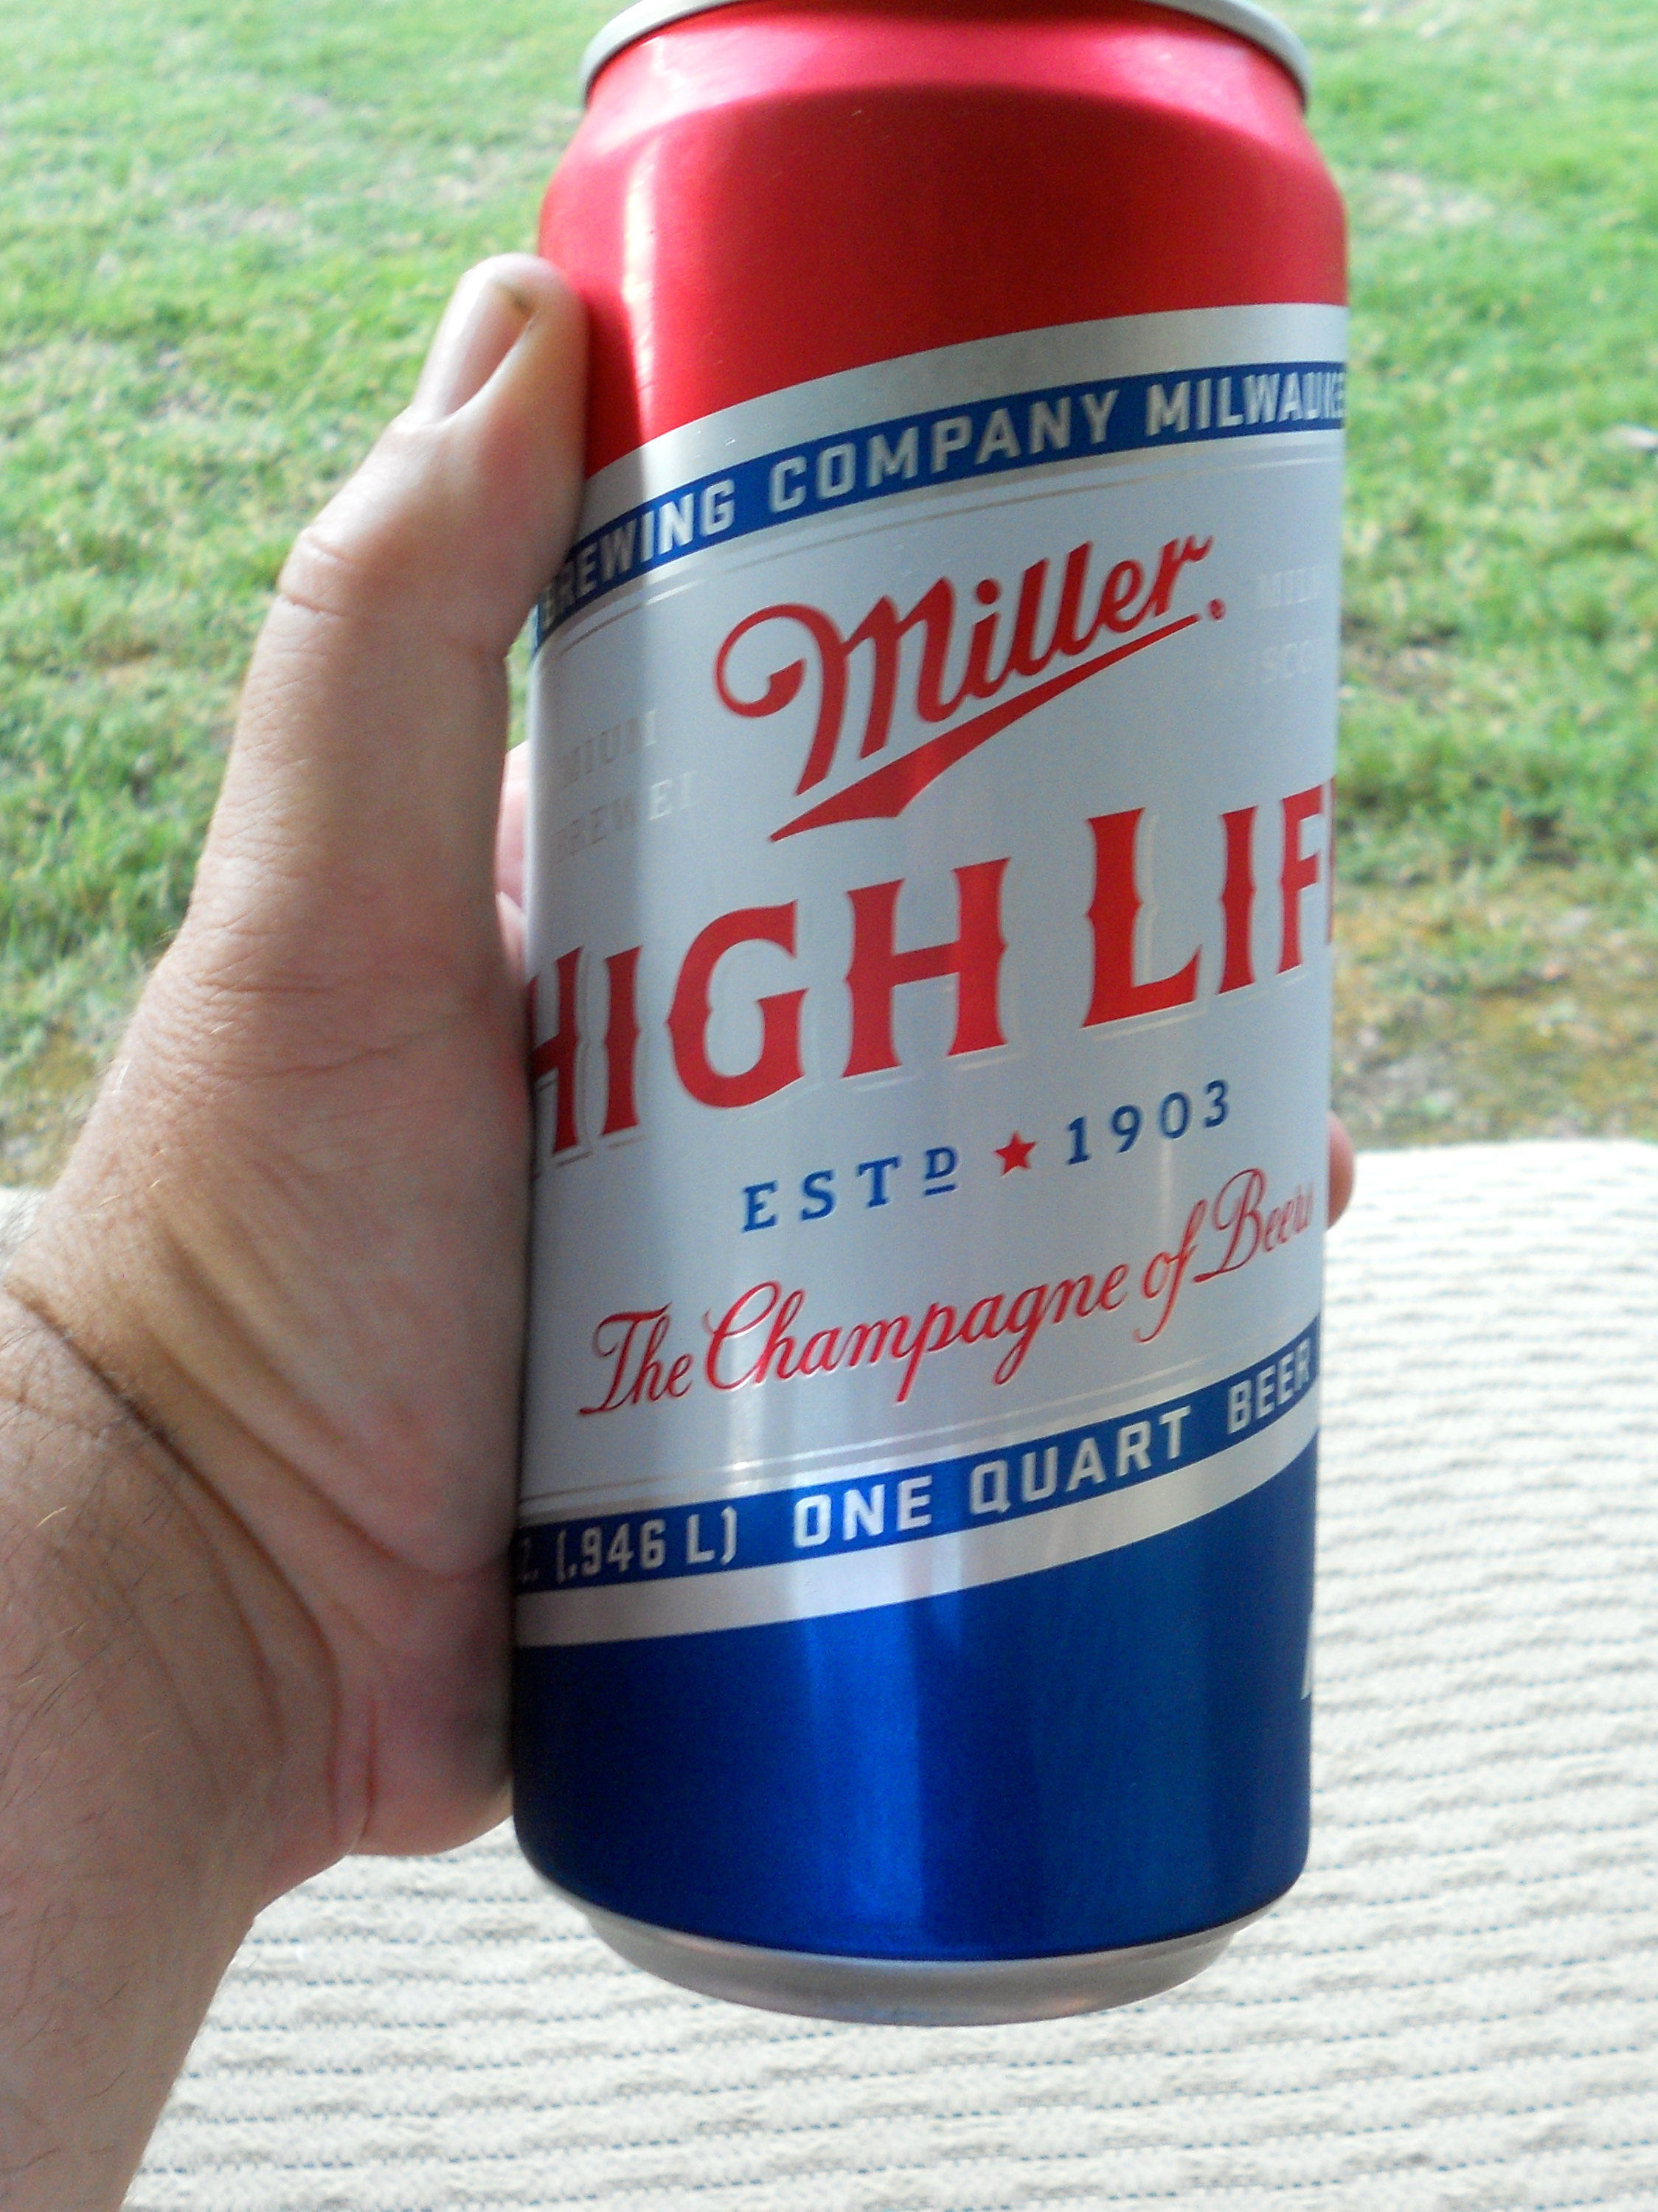 Shite and Onions: Miller High Life | Tilting Suds